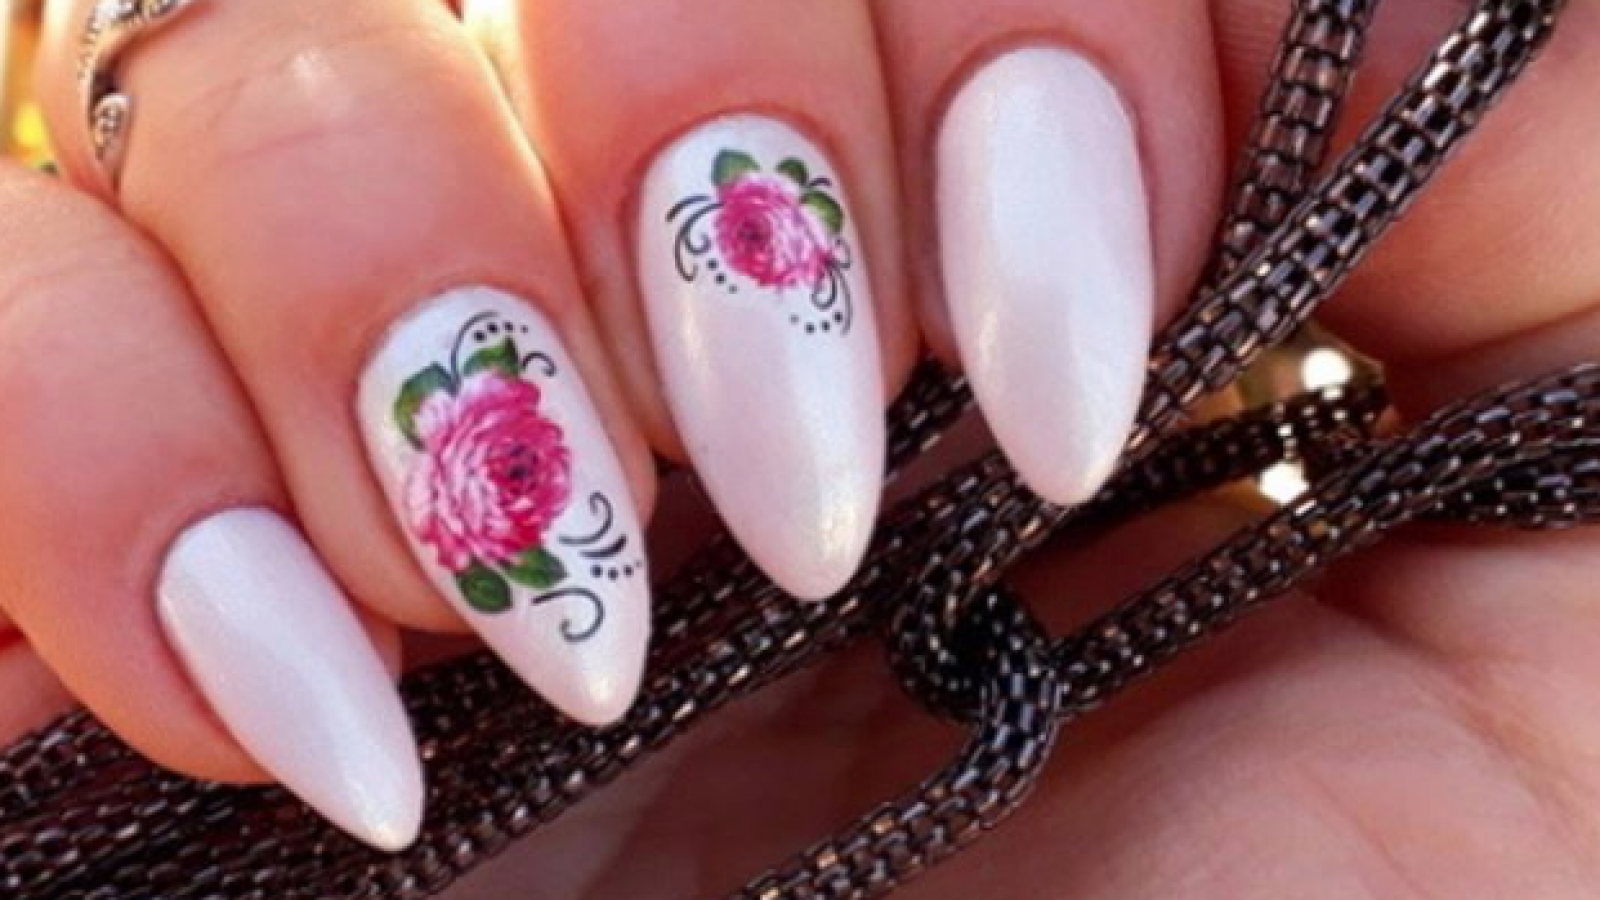 Beautiful white nails with pink roses